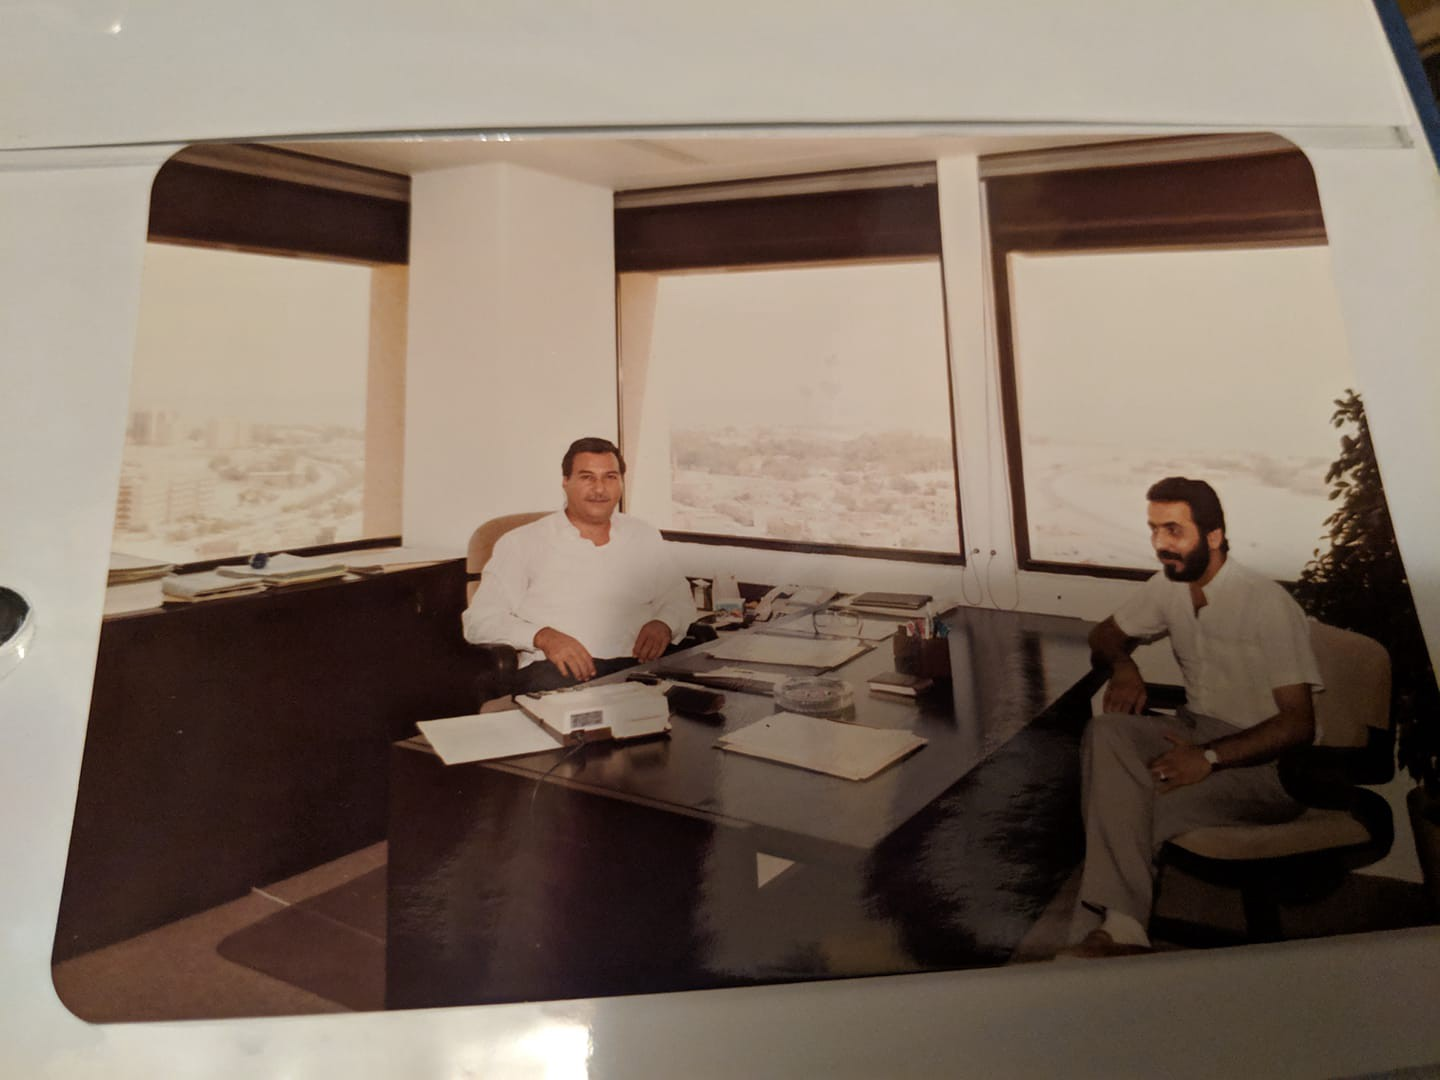 My father sits behind an office desk with a colleague sitting in front of the desk. Several windows are behind the desk.